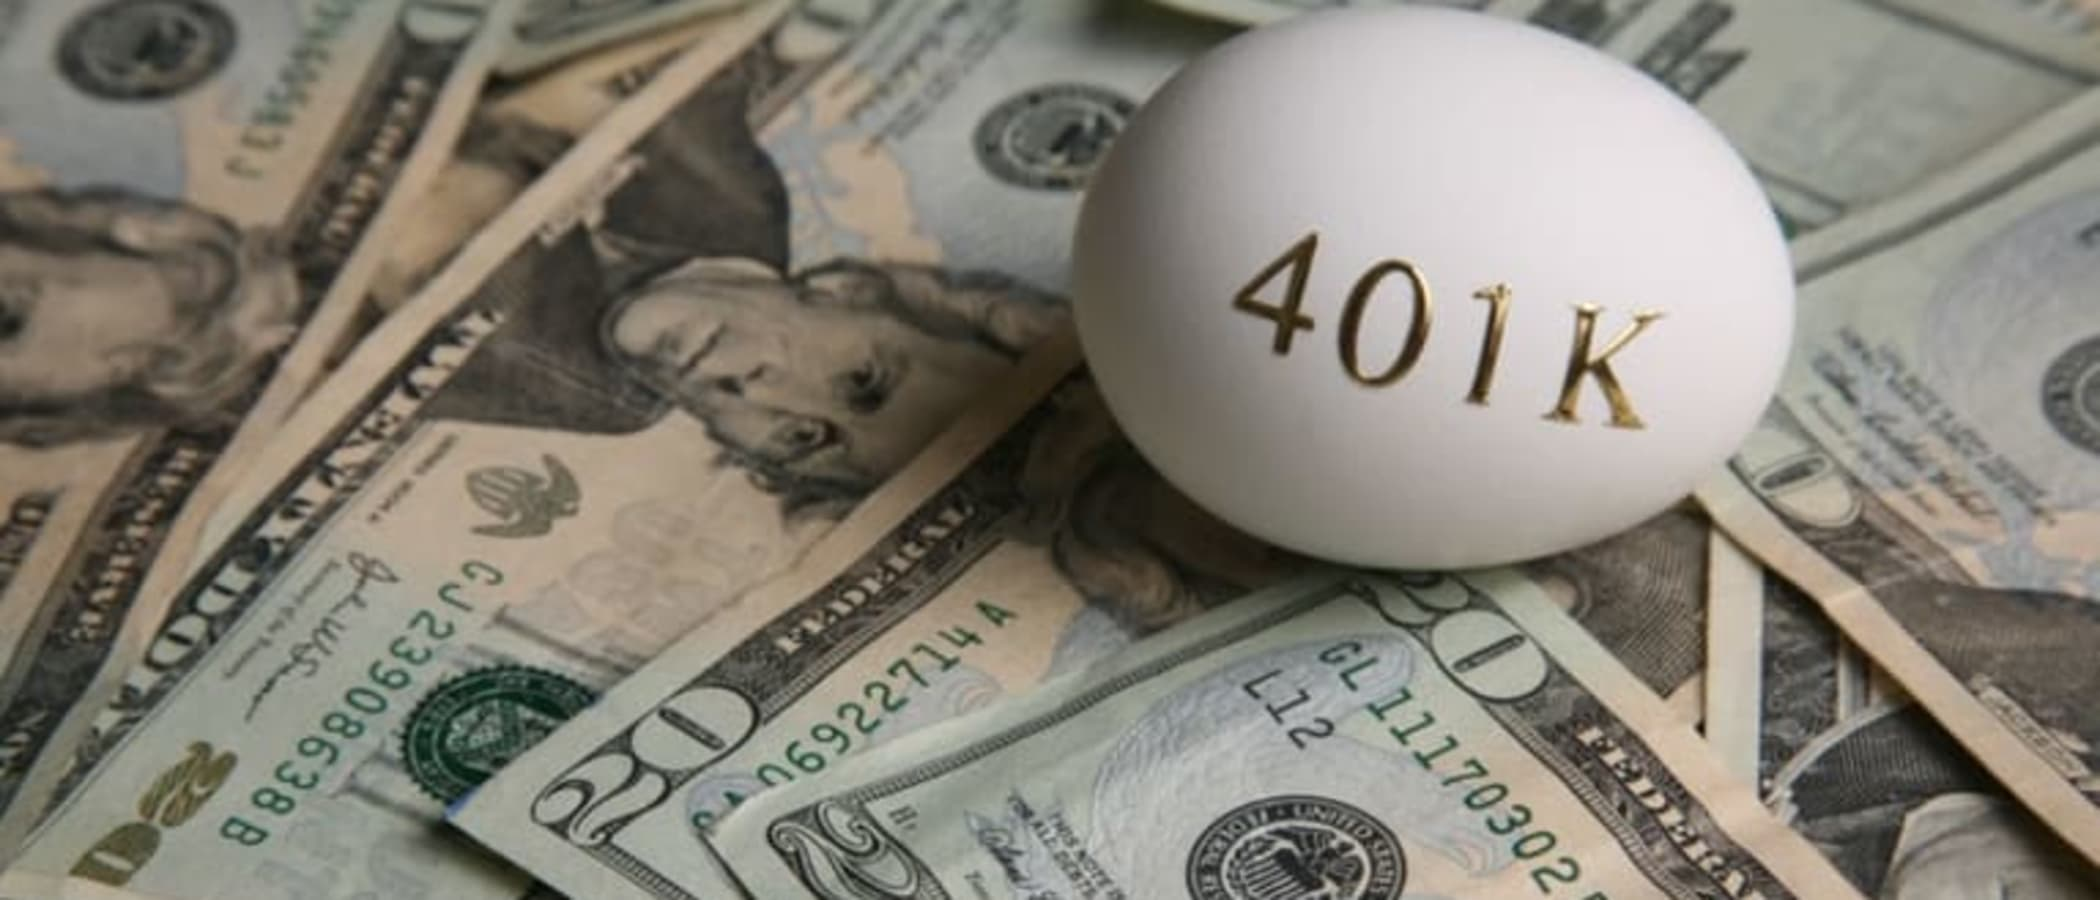 House Passes SECURE Act to Ease 401(k) Compliance, Promote Savings